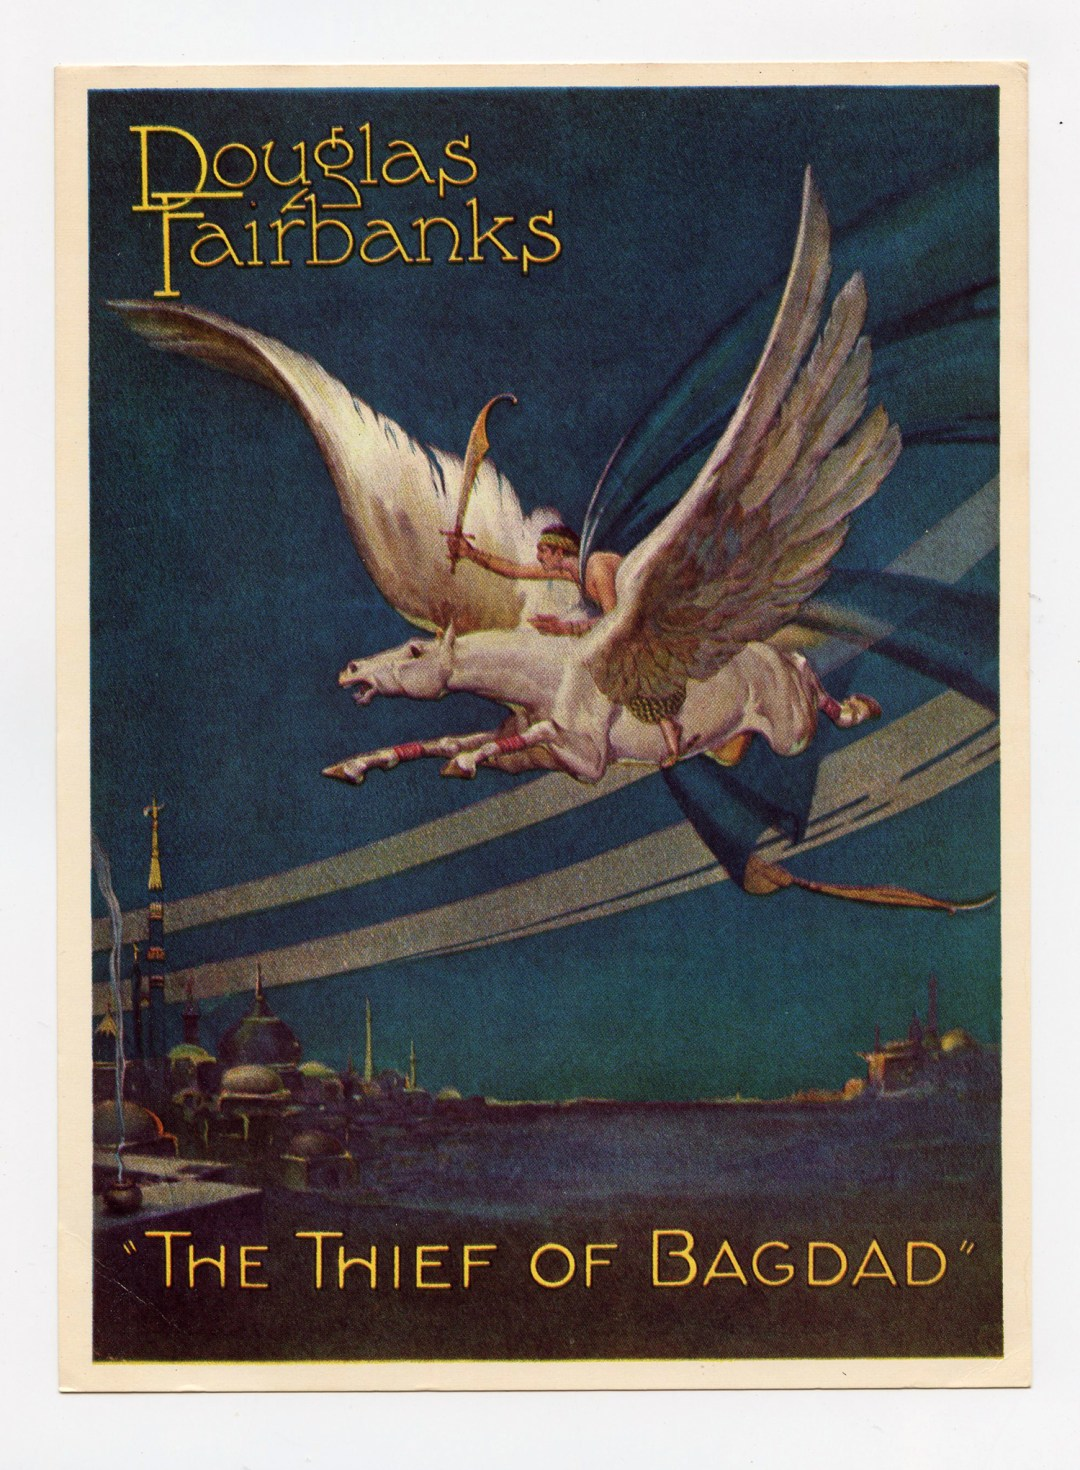 Douglas Fairbanks Postcard The Thief of Bagdad